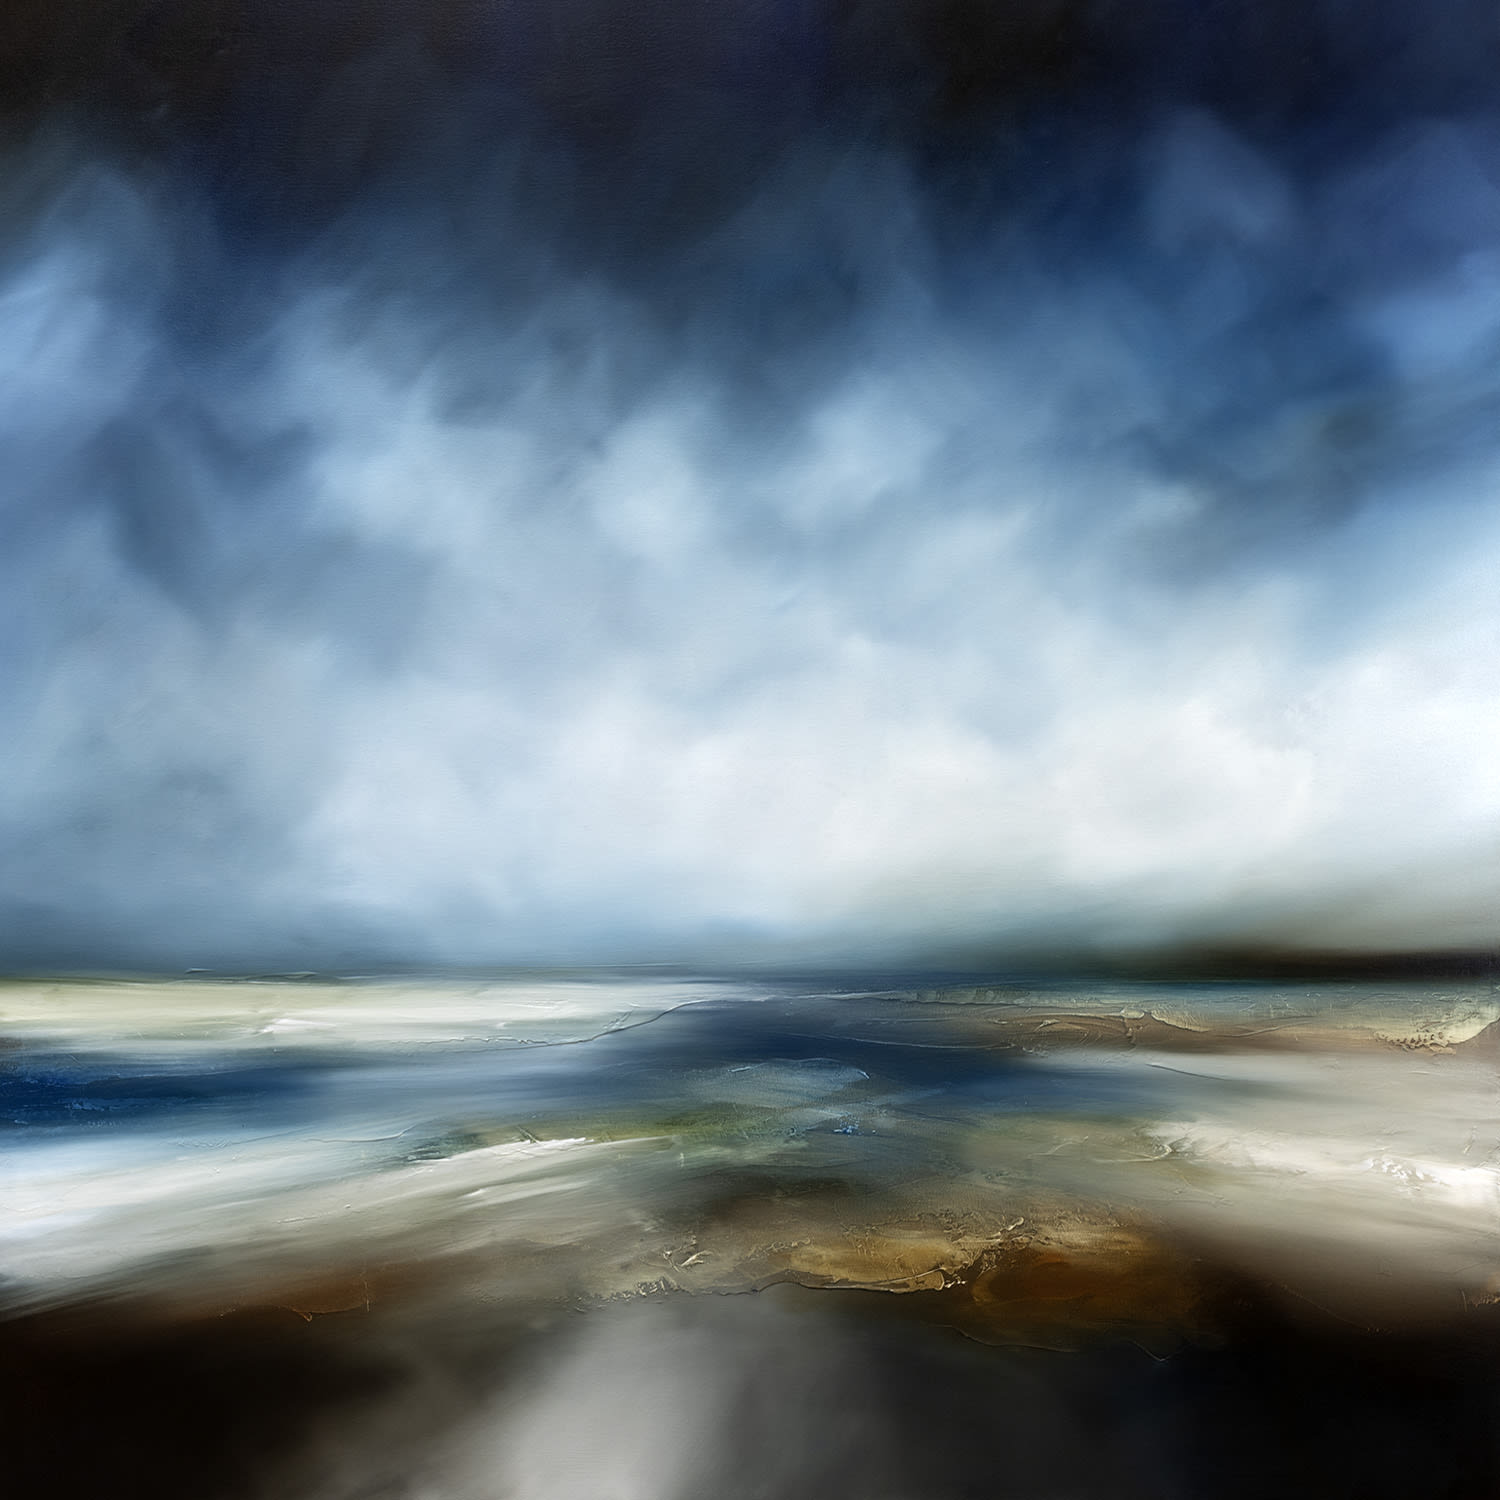 """<span class=""""link fancybox-details-link""""><a href=""""/artists/244-paul-bennett/works/6991-paul-bennett-the-returning-tides-2020/"""">View Detail Page</a></span><div class=""""artist""""><strong>Paul Bennett</strong></div> b. 1975 <div class=""""title""""><em>The Returning Tides</em>, 2020</div> <div class=""""signed_and_dated"""">signed on the back</div> <div class=""""medium"""">Oil on deep edged canvas</div> <div class=""""dimensions"""">h. 100 x w. 100 cm</div><div class=""""copyright_line"""">Copyright The Artist</div>"""